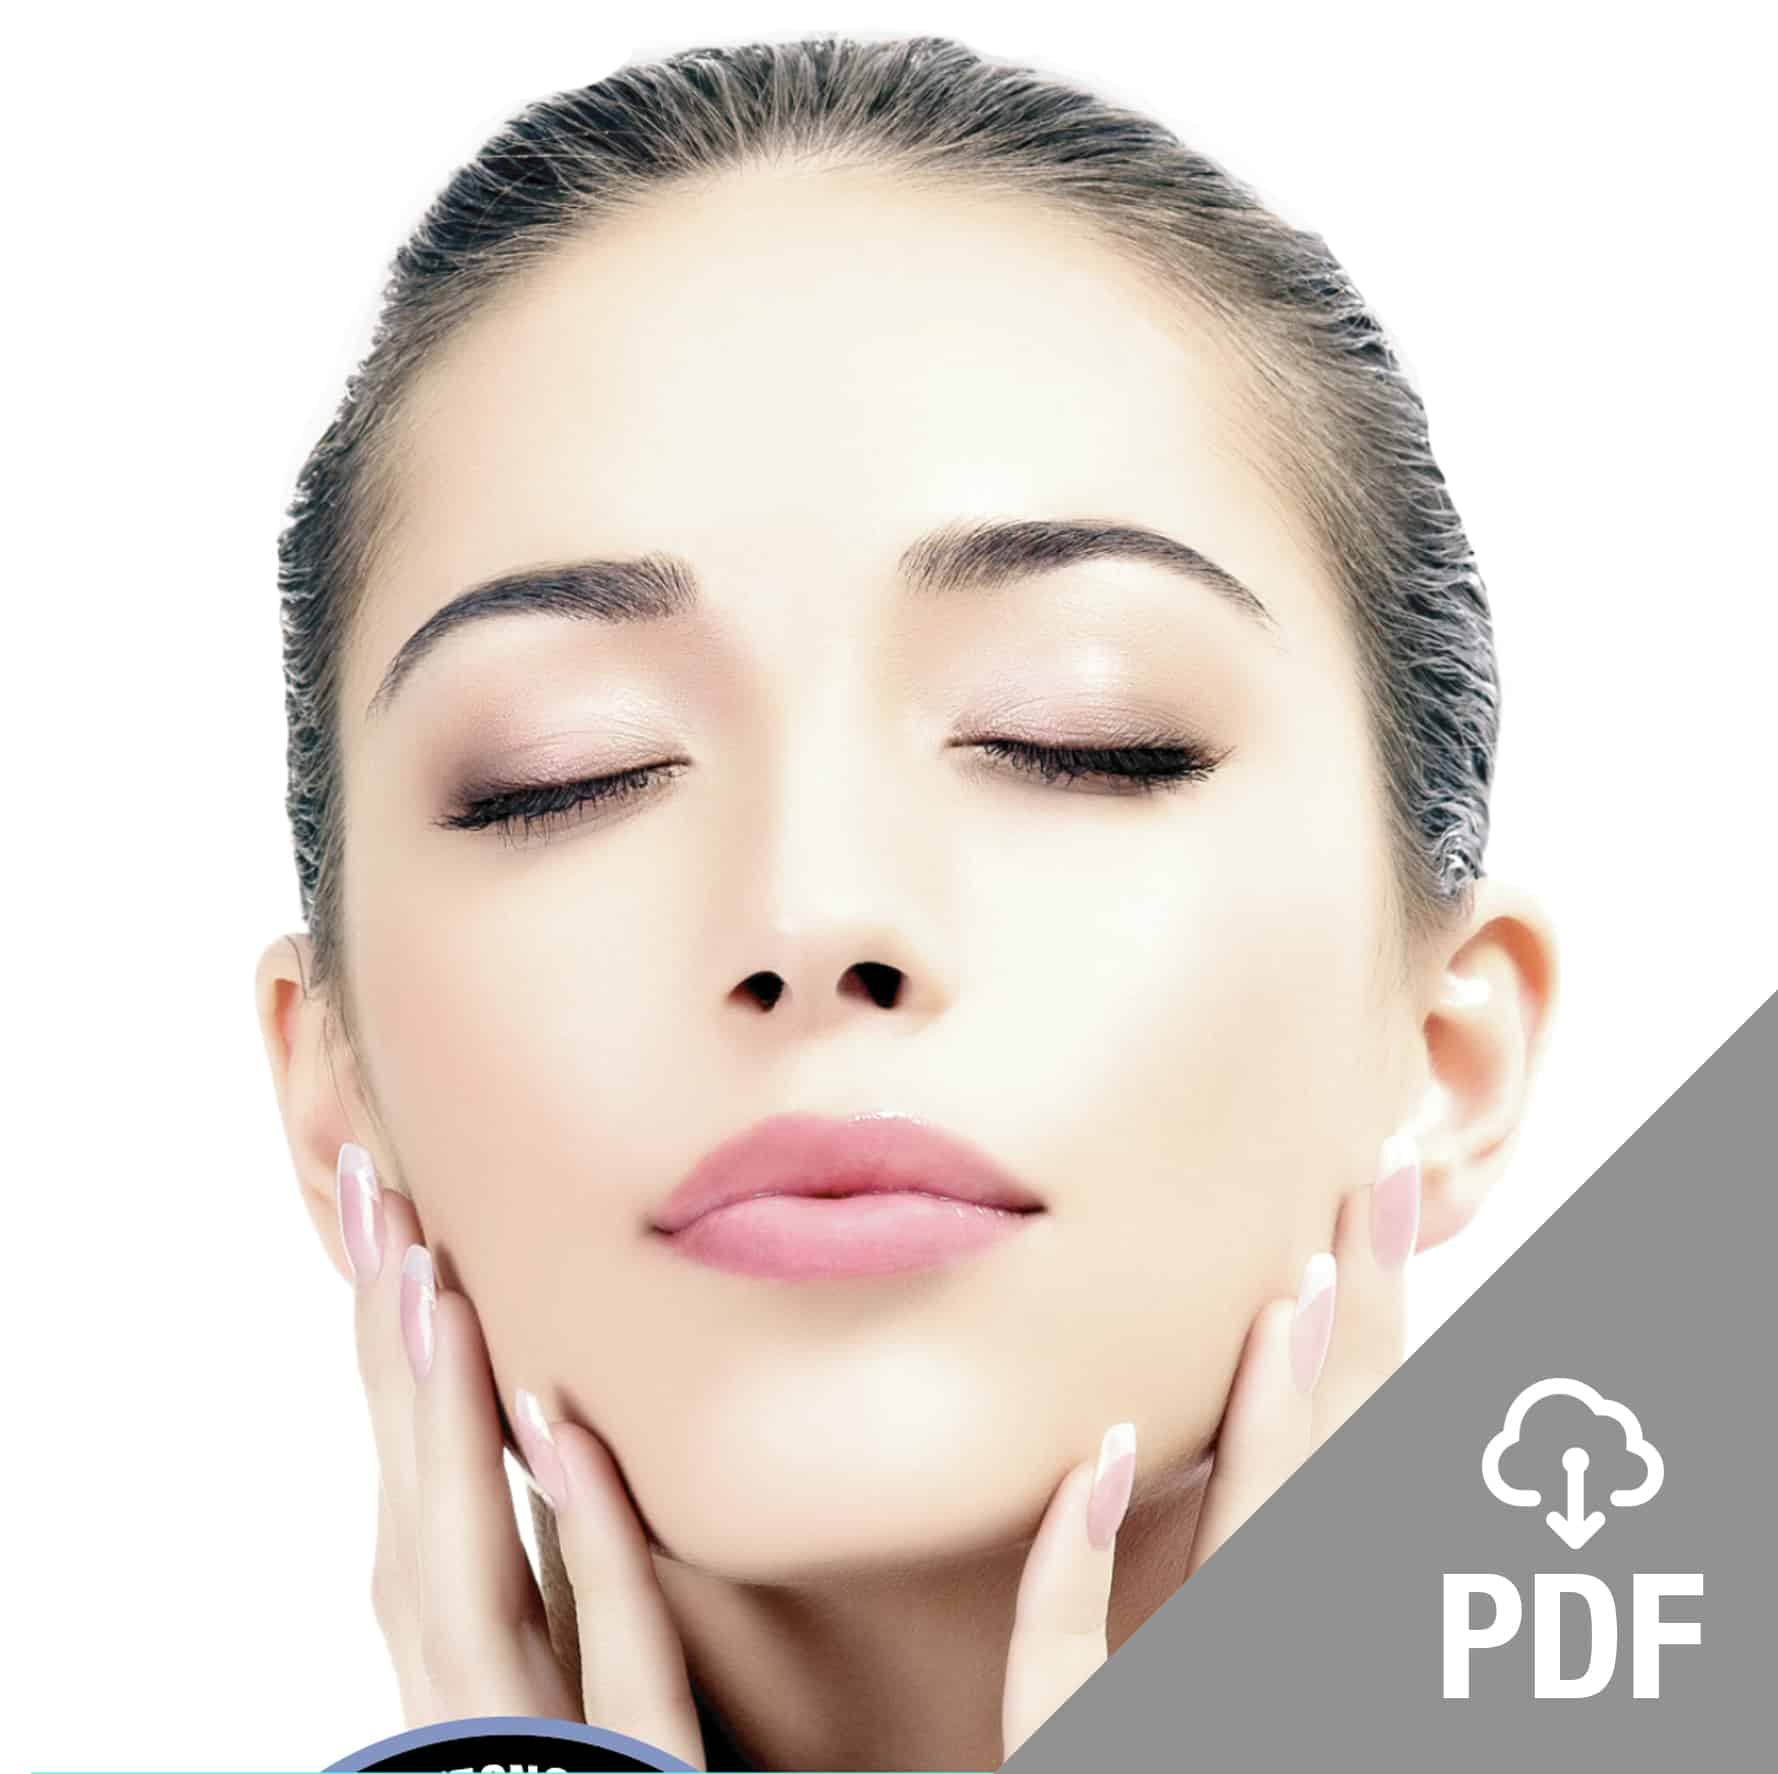 profacial pdf 2 original Aqua Peeling, Ion Lifting, radiofrecuencia y Ultrasonidos. belium medical distribuidor españa. Limpieza facial profunda, rejuvenecimiento, antiarrugas, producción de colágeno